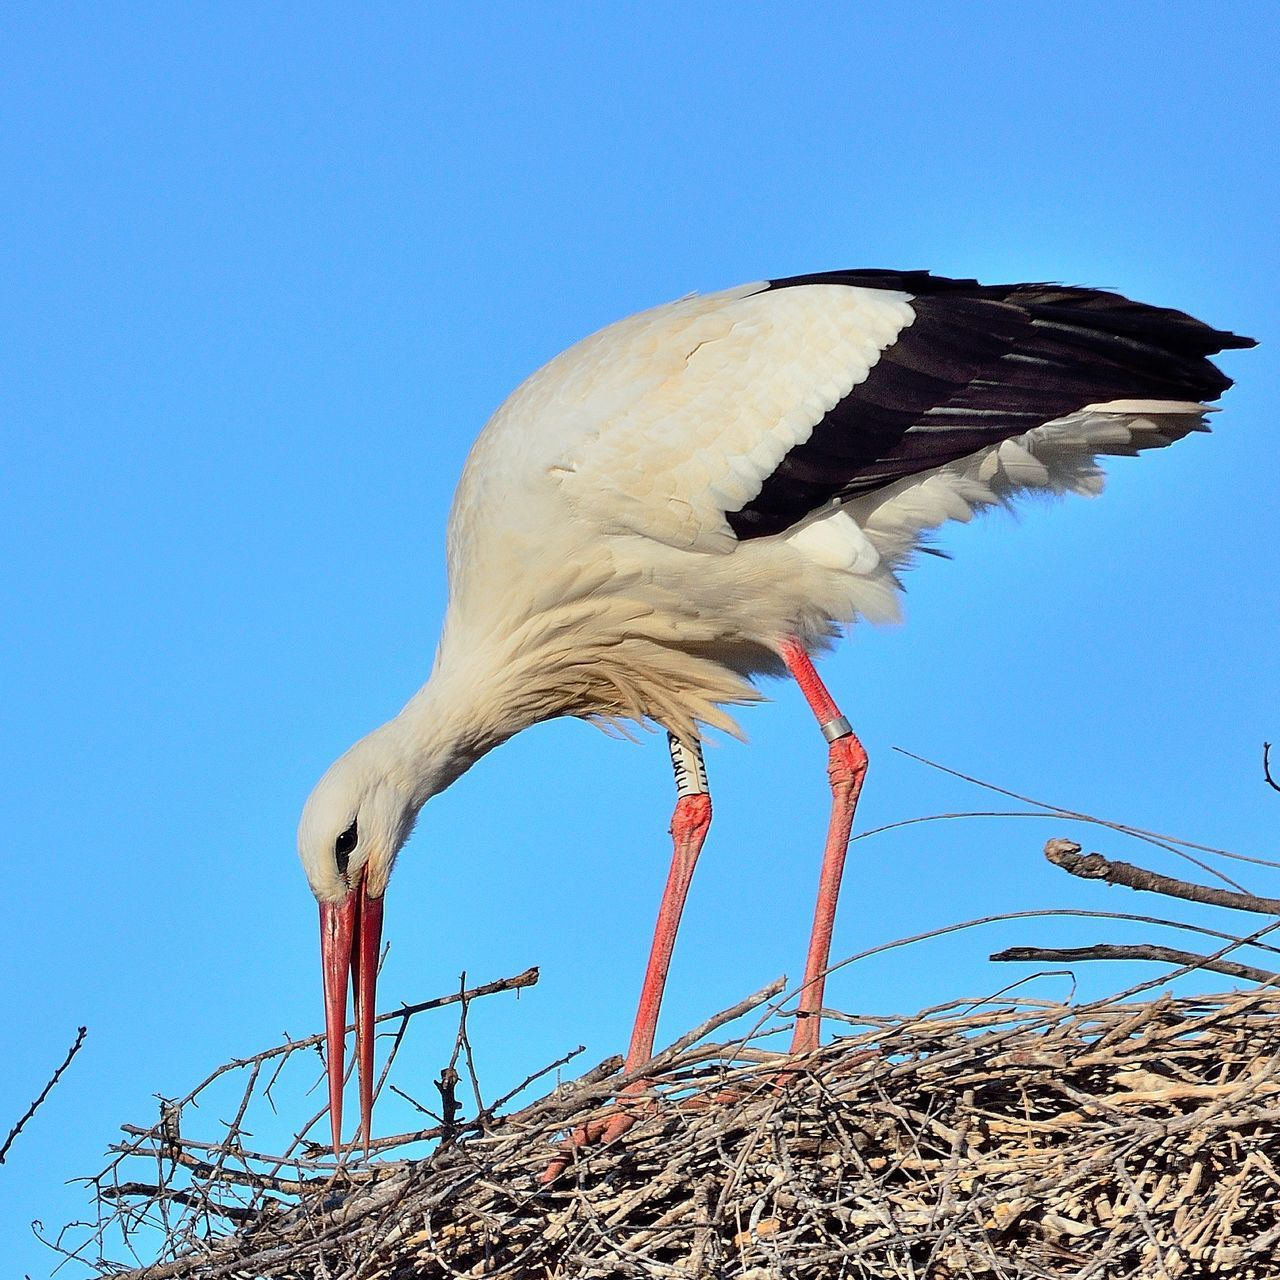 bird, animals in the wild, animal themes, clear sky, stork, white stork, animal wildlife, no people, nature, day, blue, outdoors